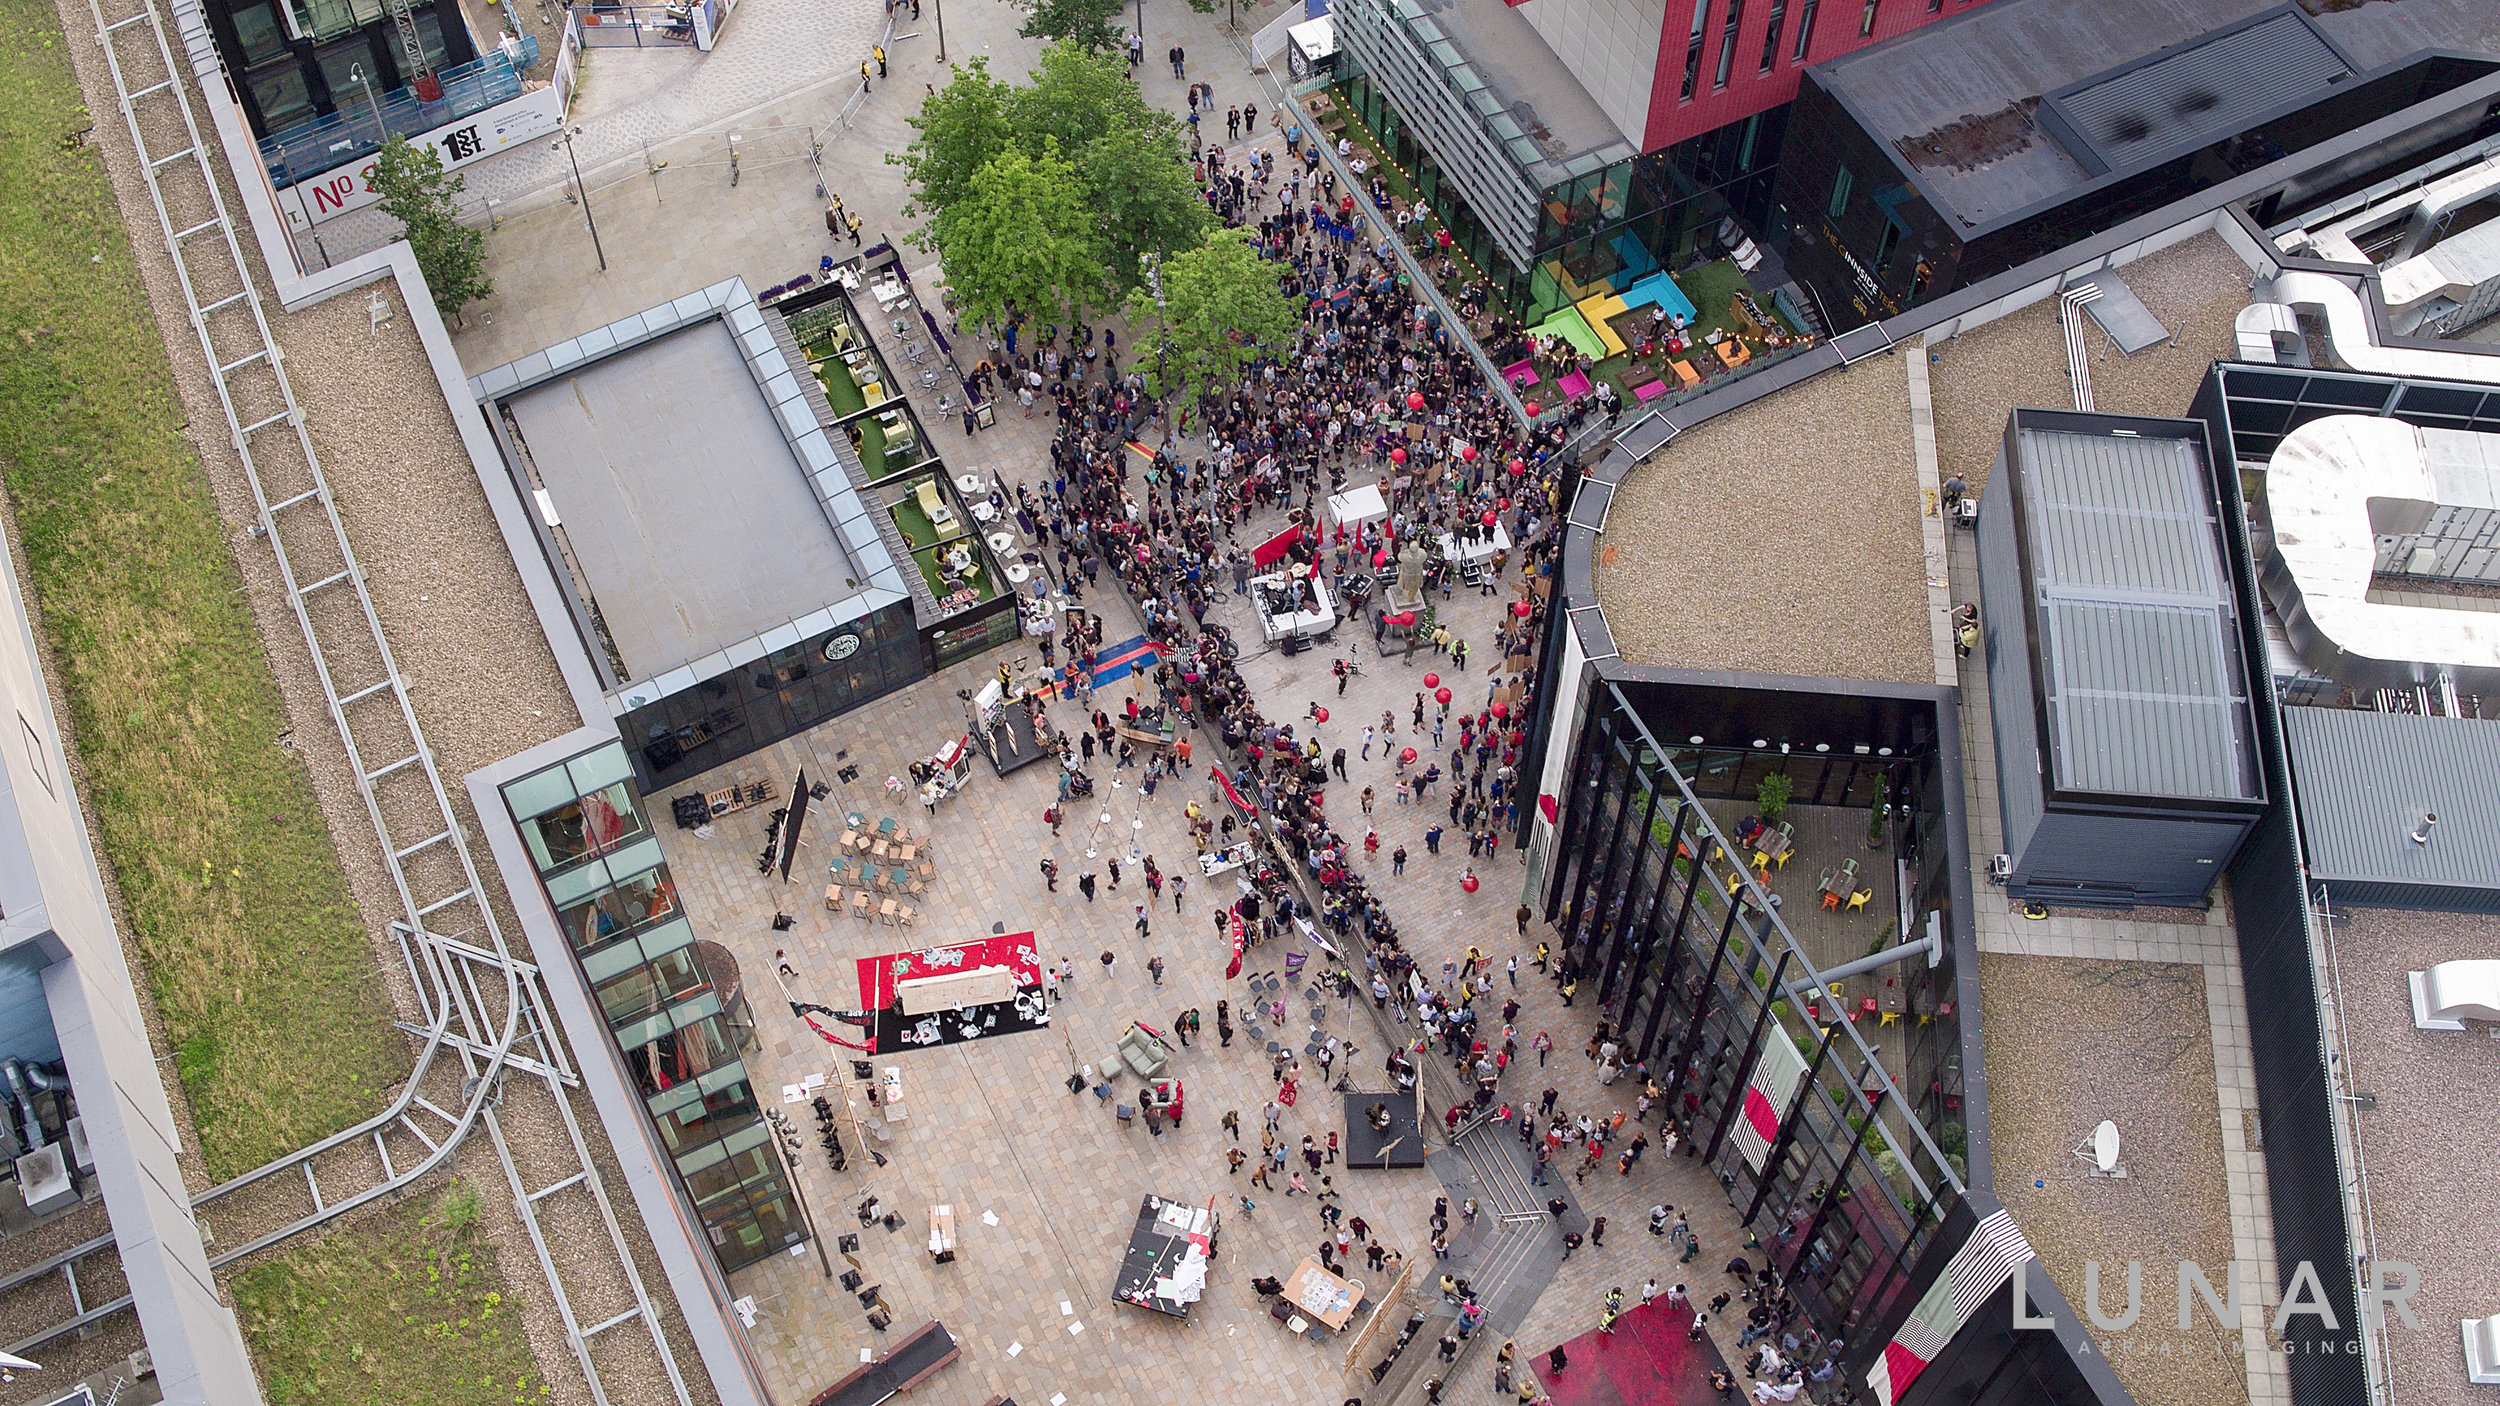 Another drone's eye view: Tony Wilson Place.